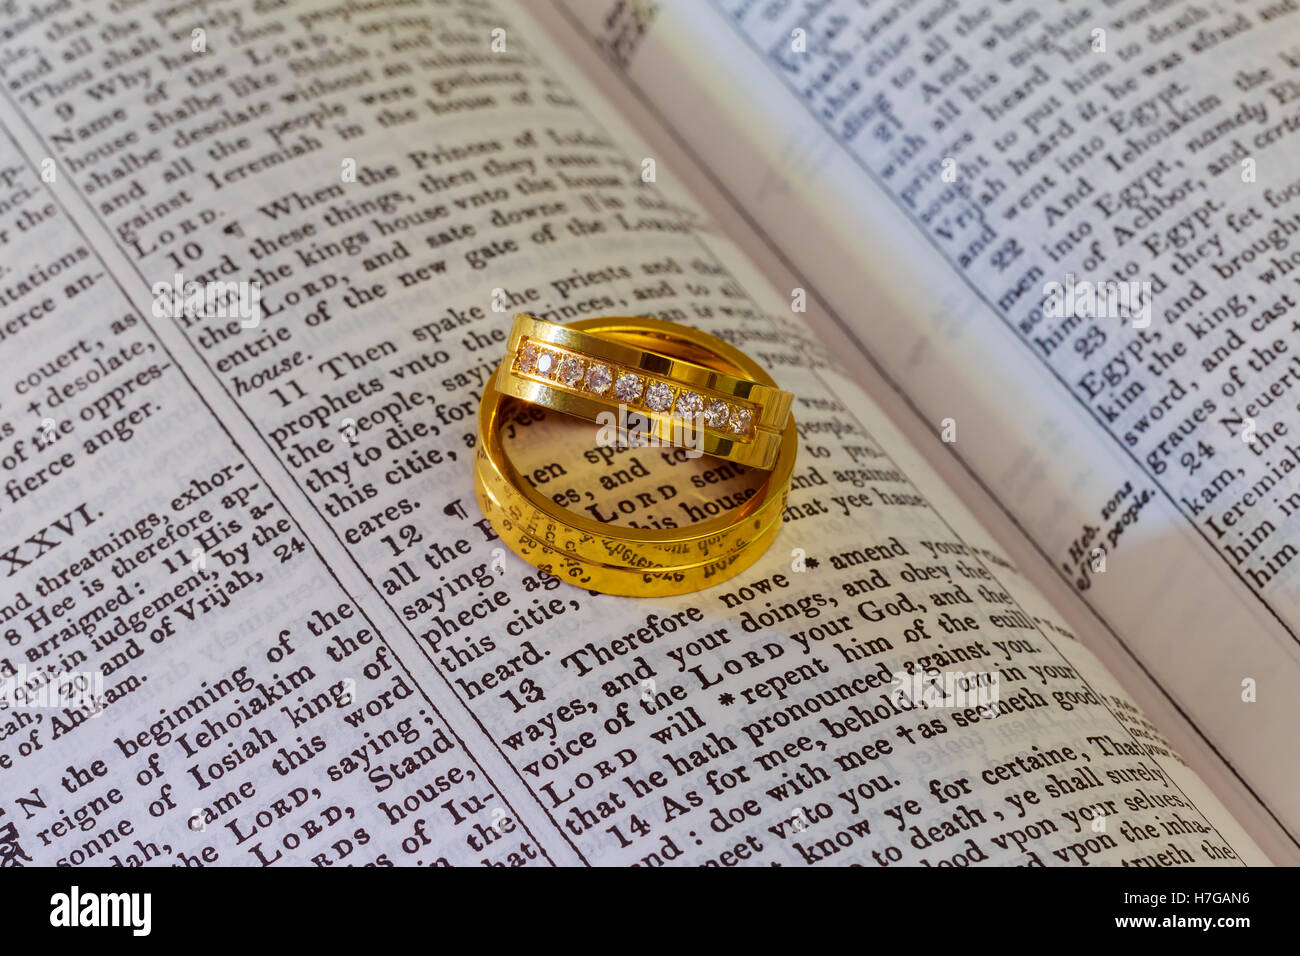 Two wedding rings on a bible Wedding rings Bible Stock Photo